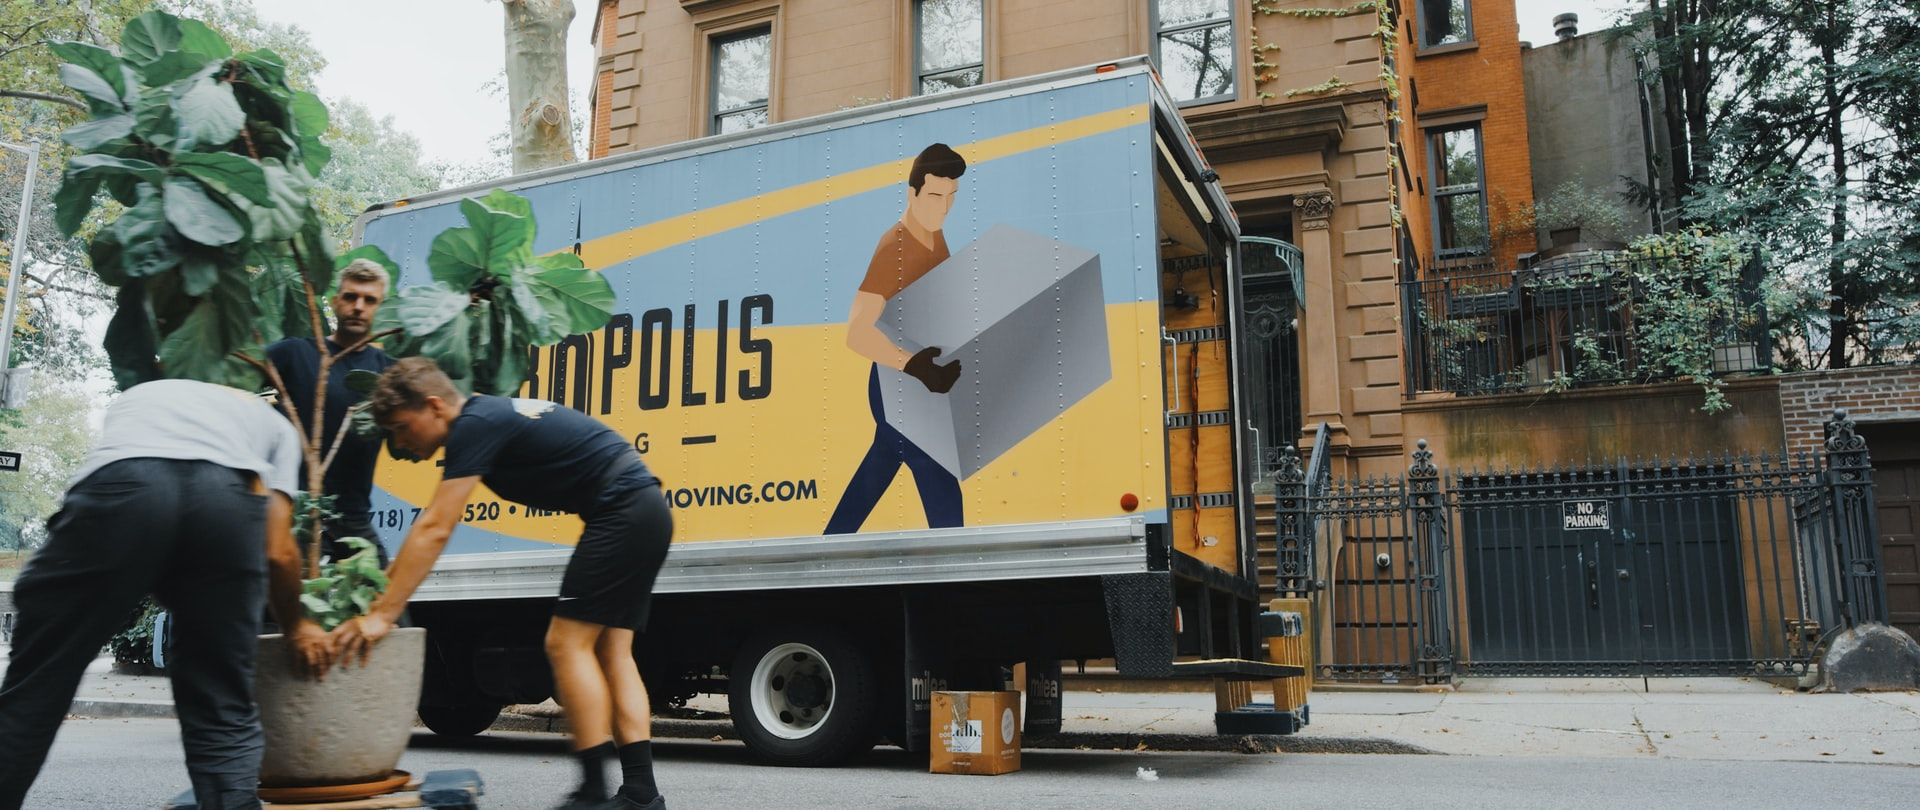 Movers in Brooklyn - Photo by Handiwork NYC via Unsplash: https://unsplash.com/photos/x6pnKtPZ-8s